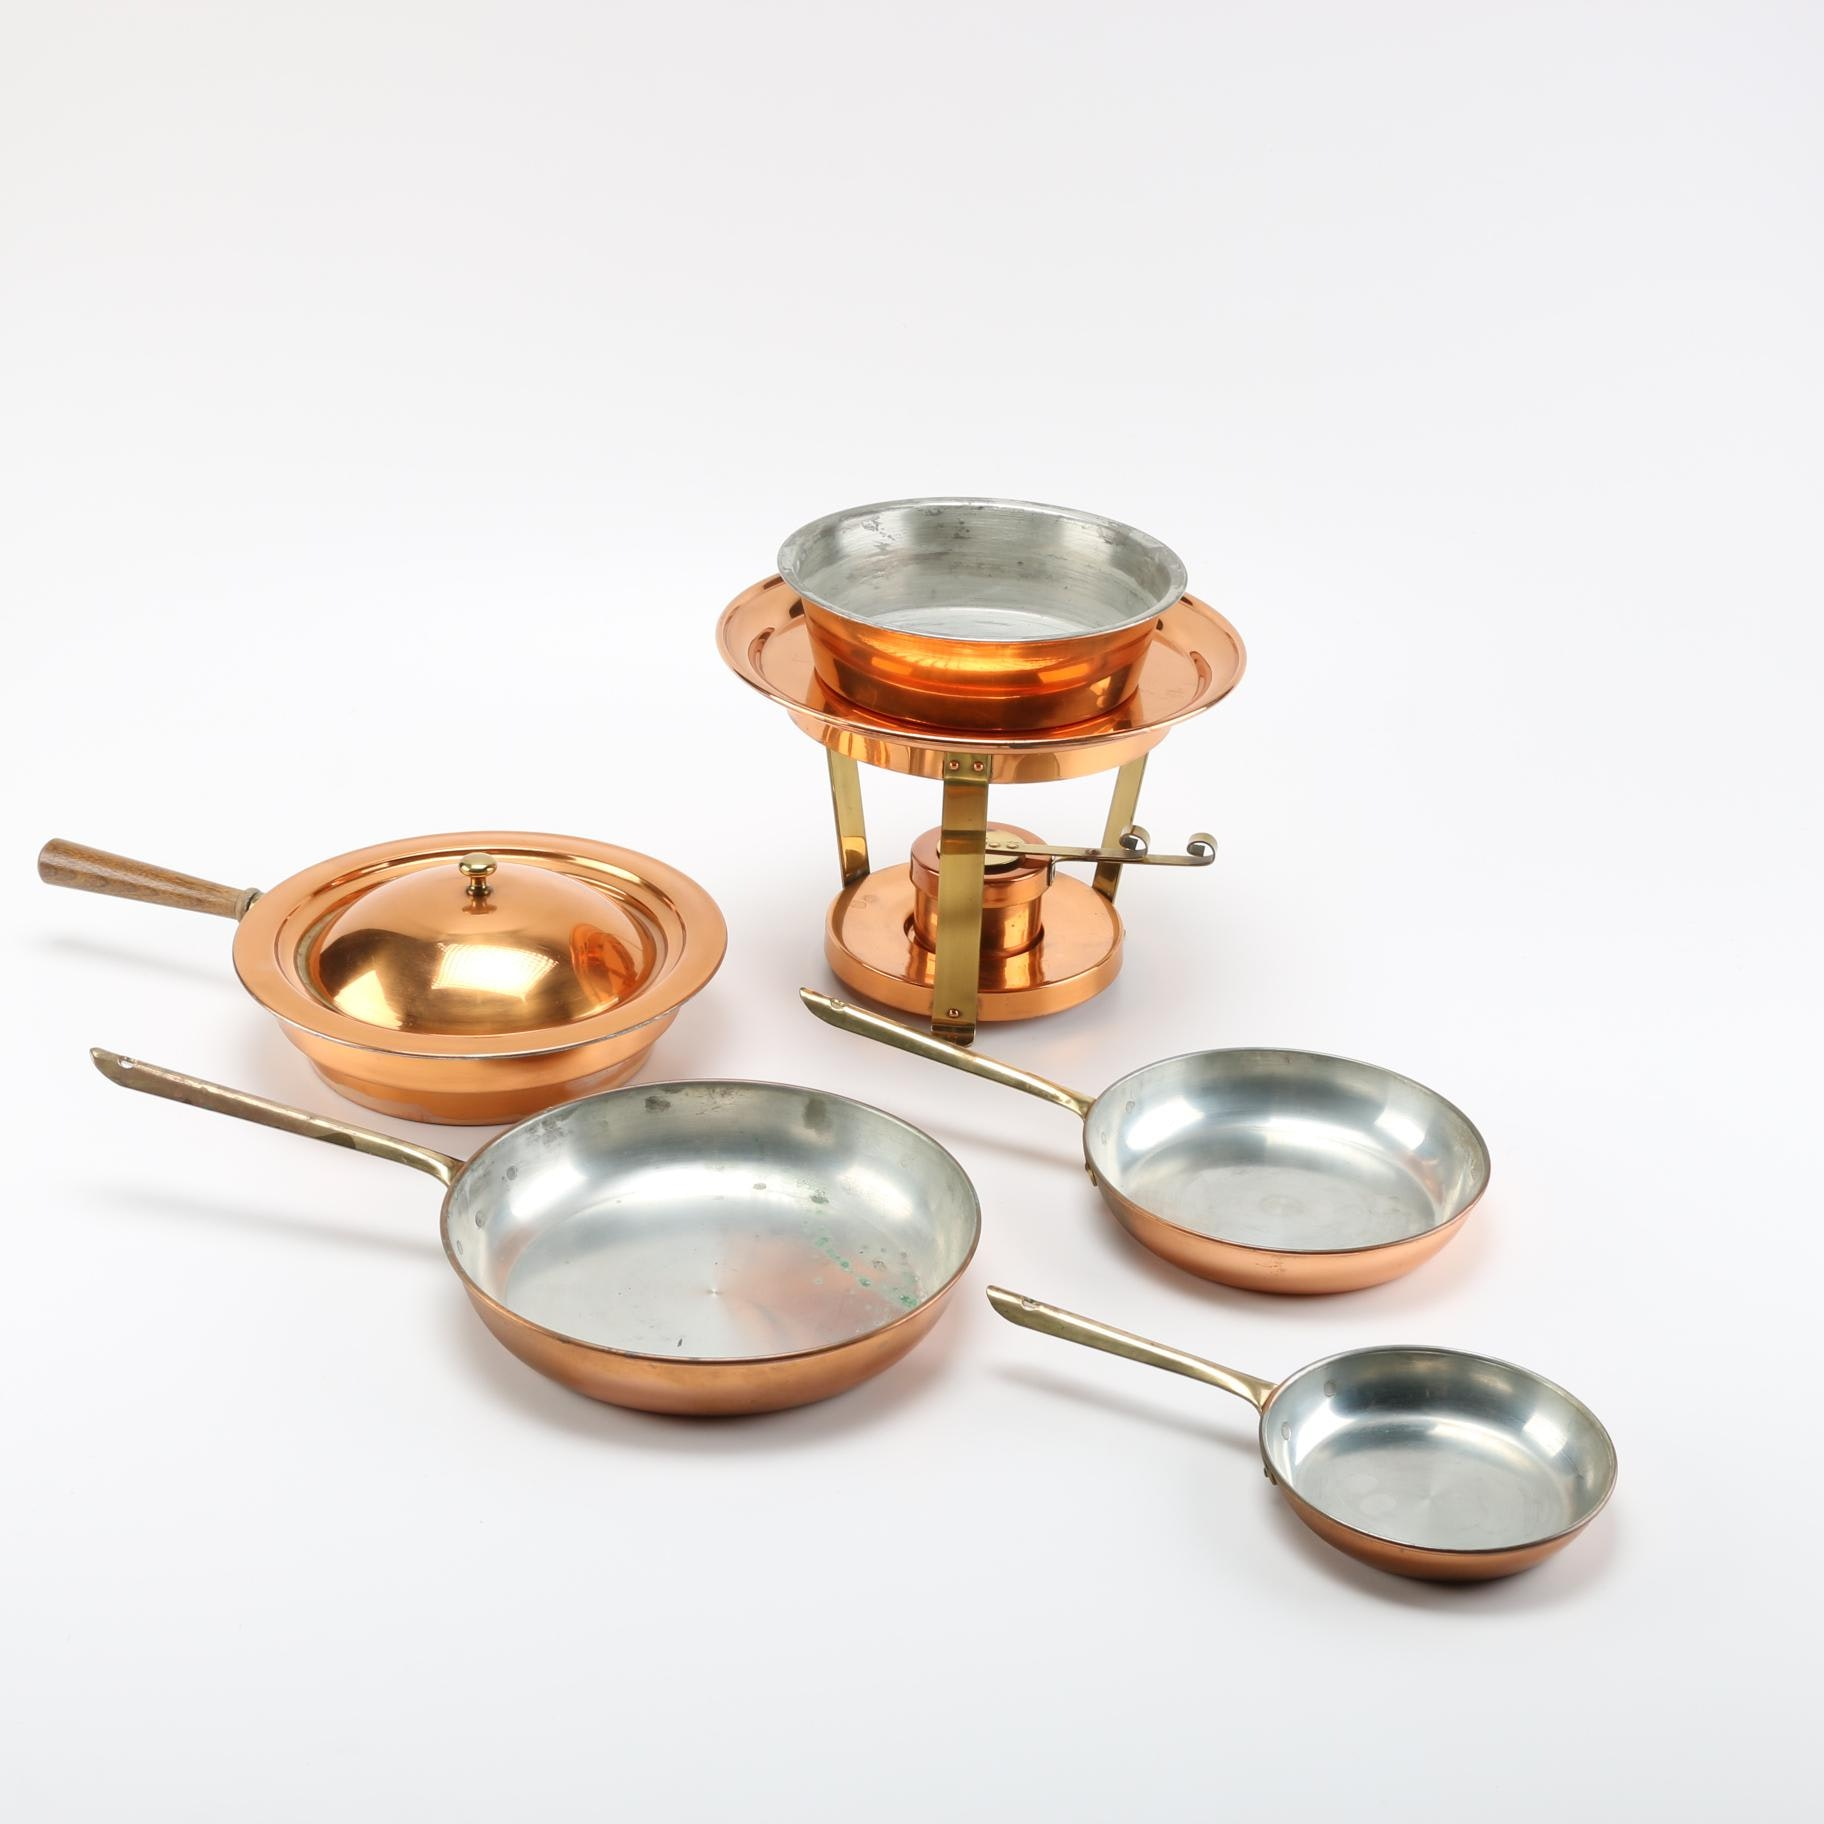 Collection of Copper Kitchenware Including a Warming Dish